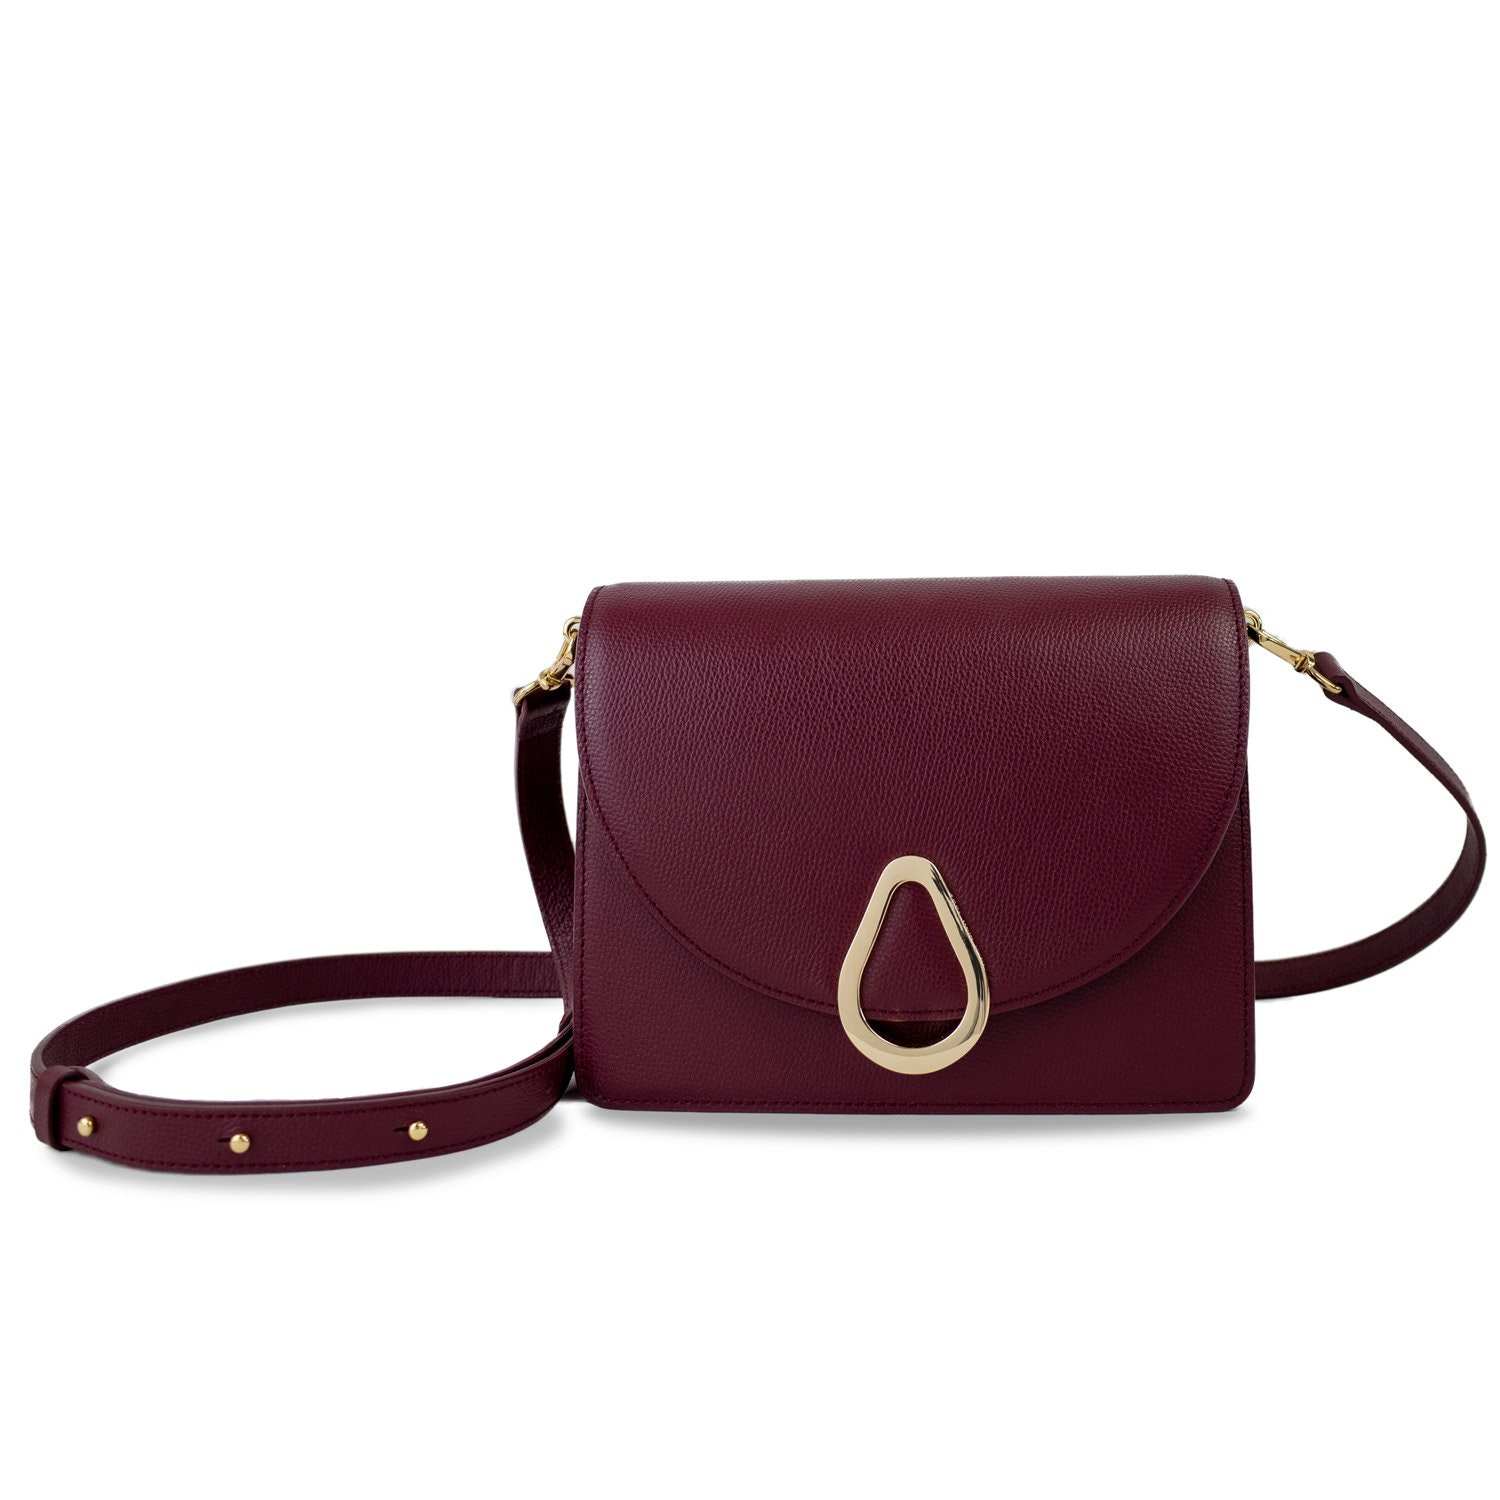 5ea85dba8b6 11 New Handbag Designers To Buy Before Everyone One Else Catches On